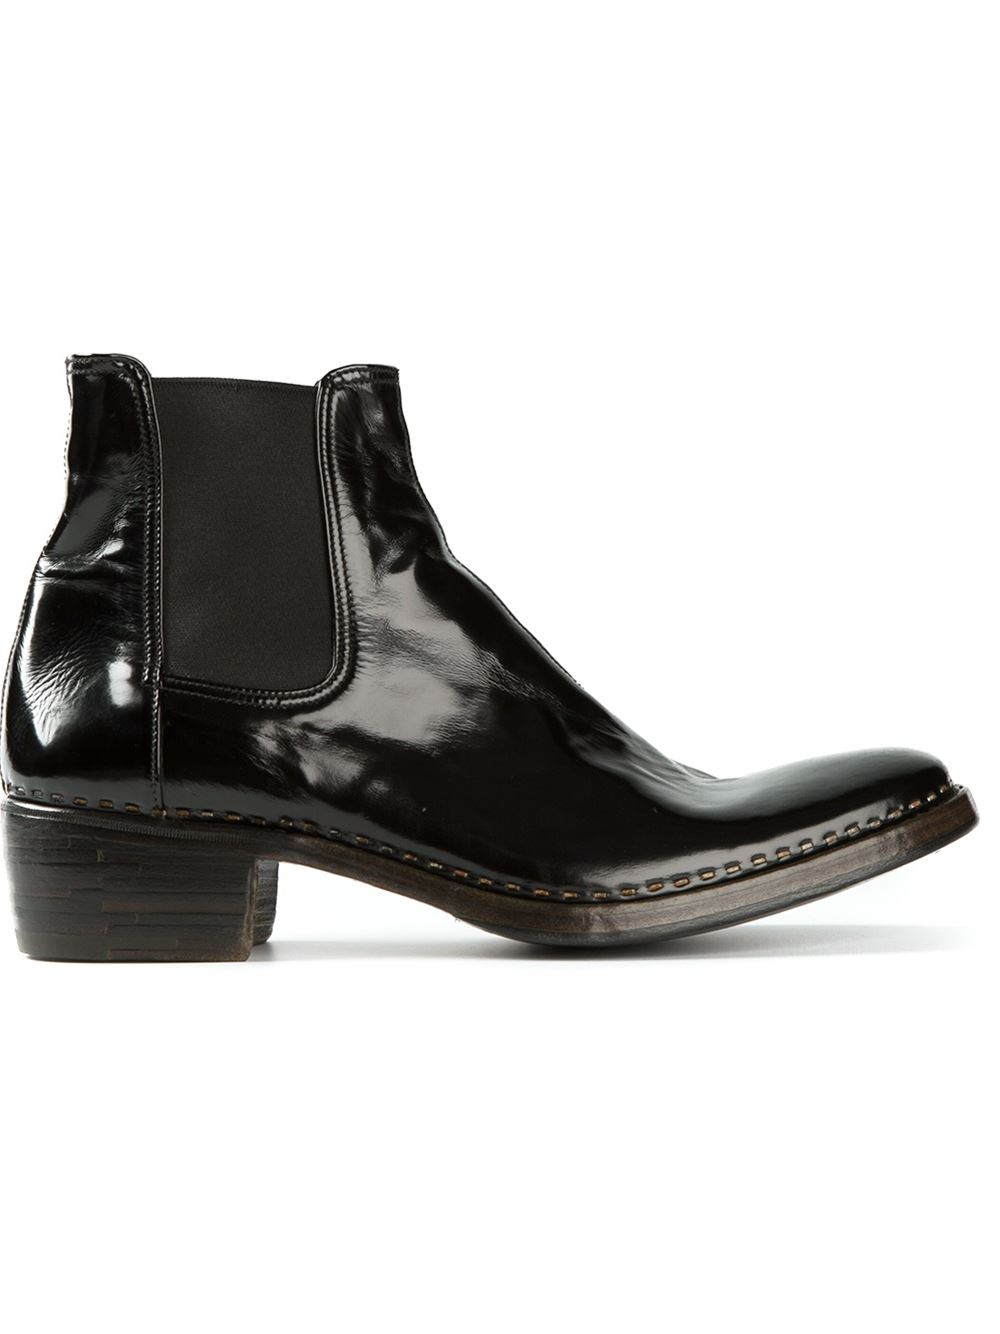 book of black patent chelsea boots womens in germany by